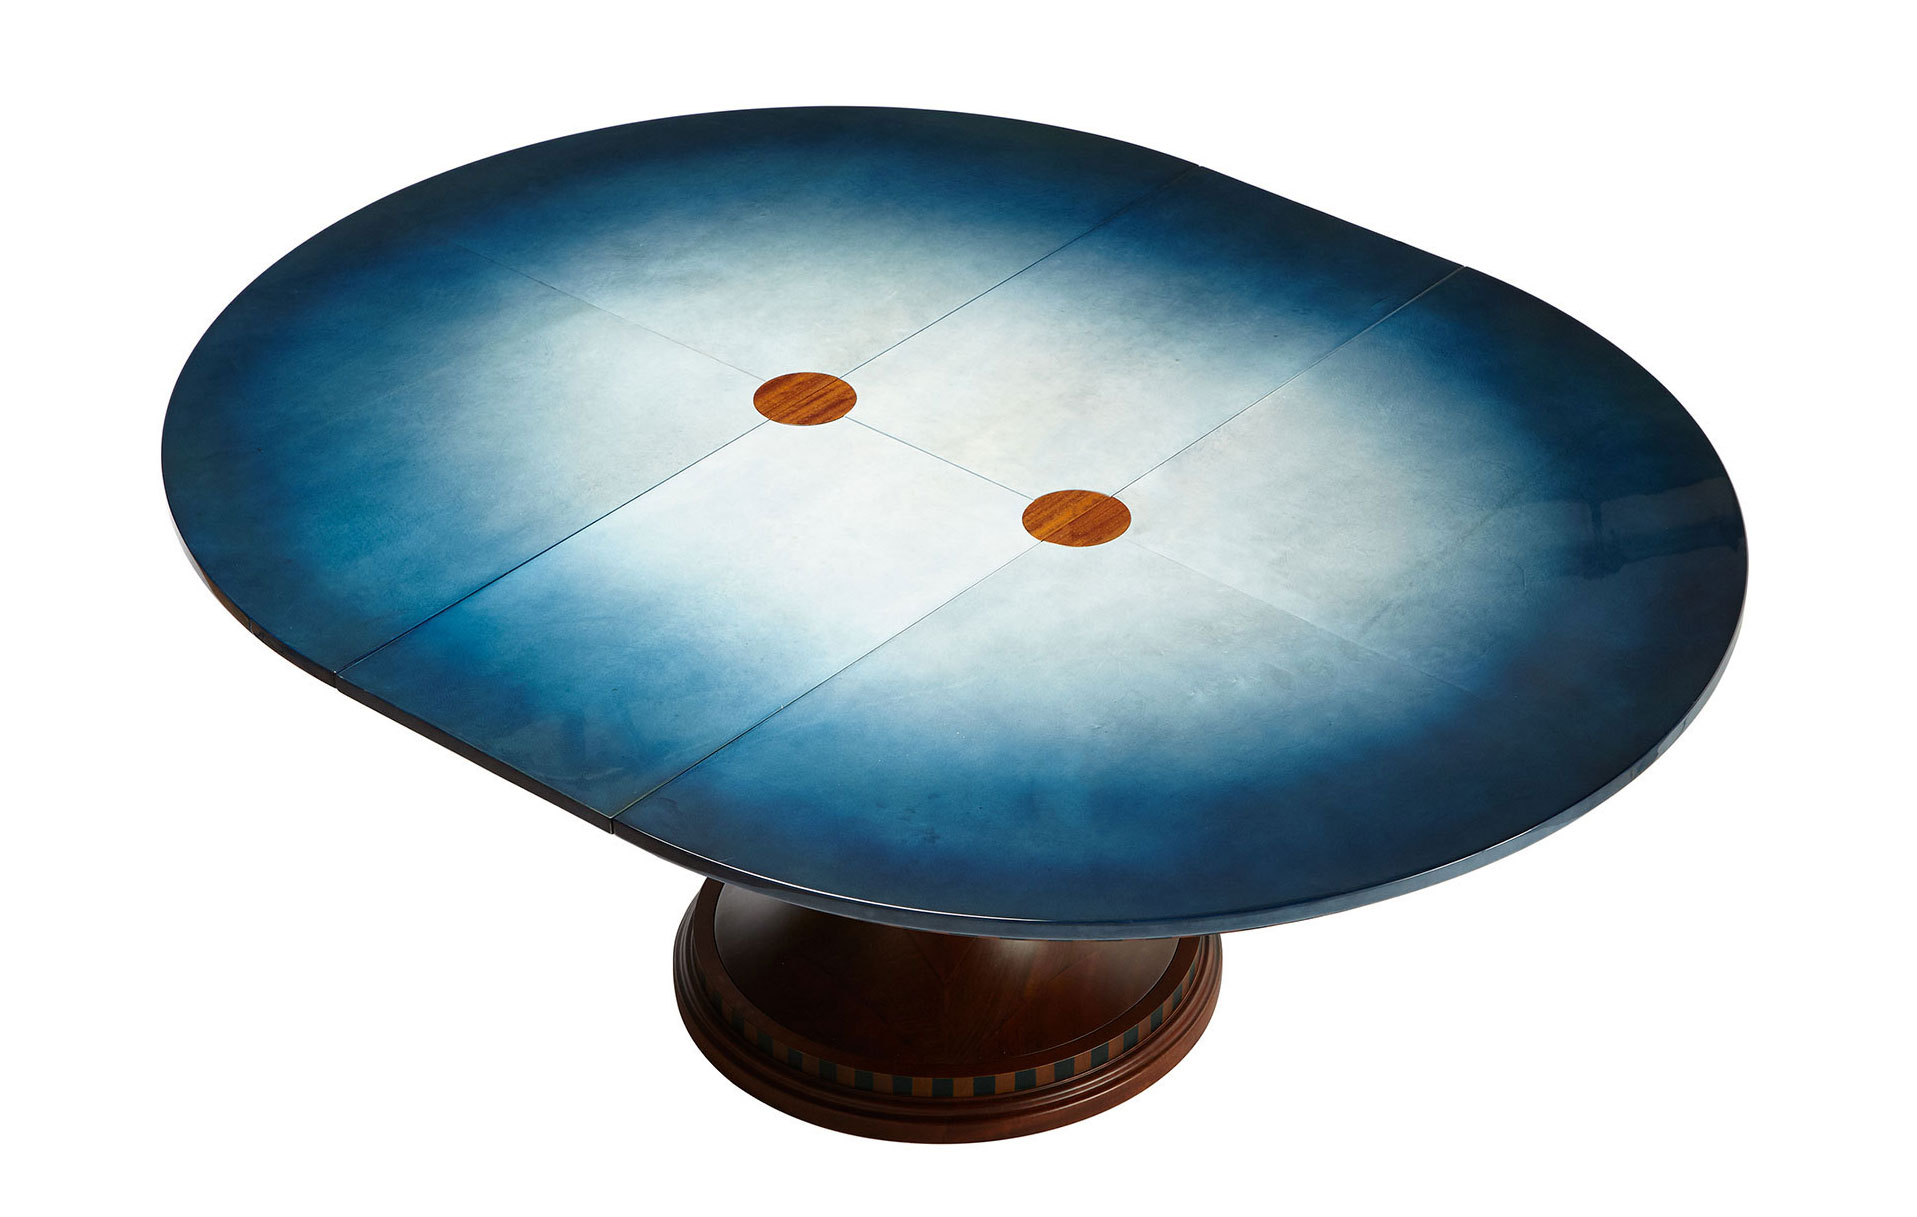 blue-lagoon-table-extended-page-image